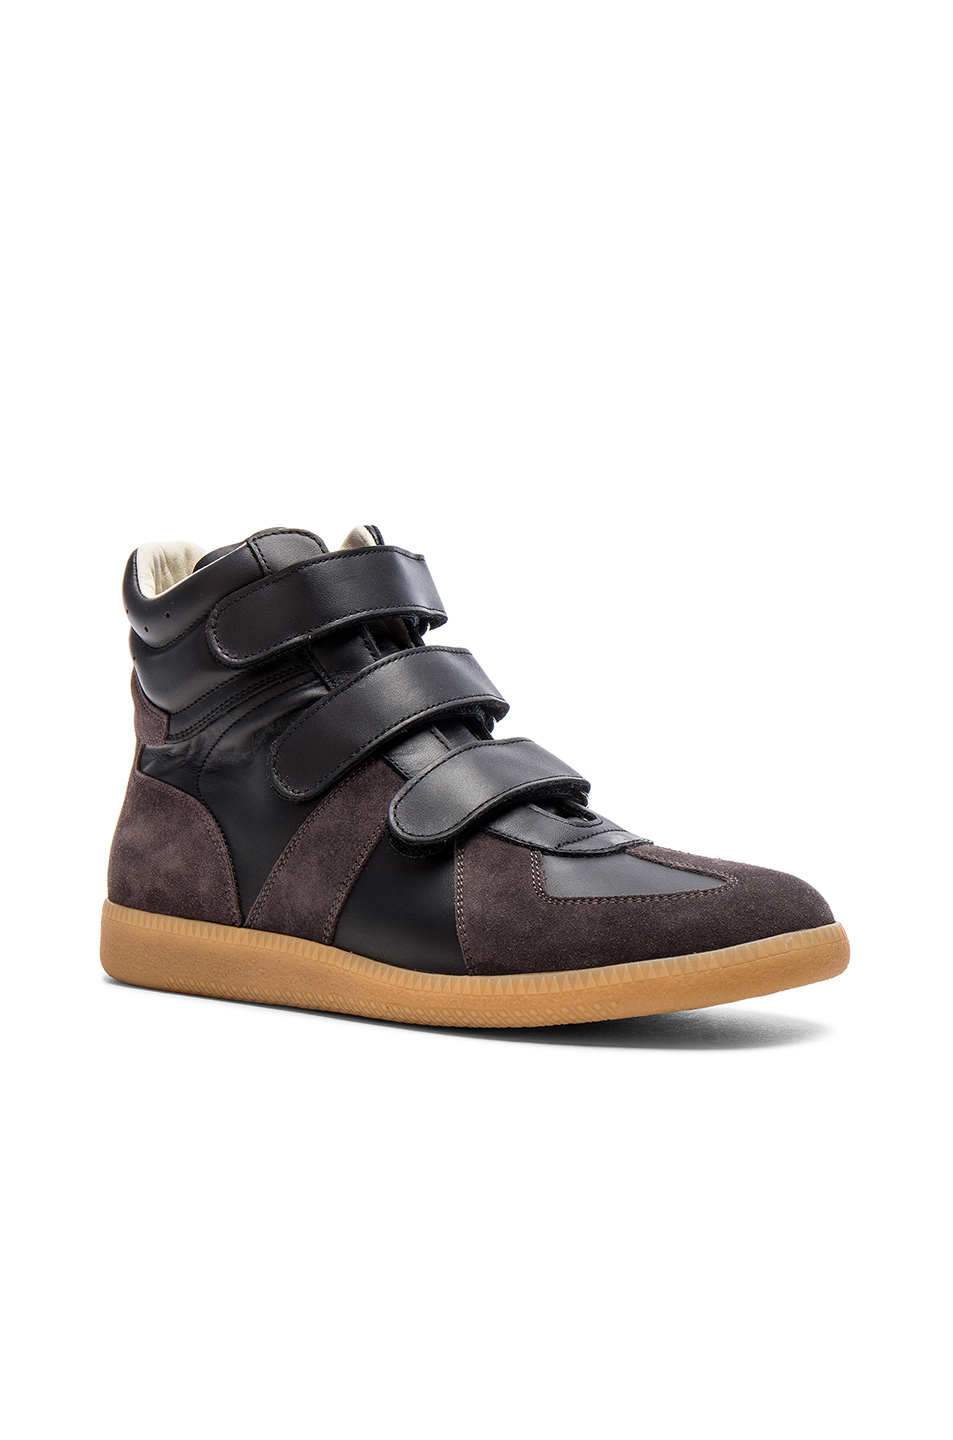 Maison Margiela Calfskin Velcro High Tops in Black